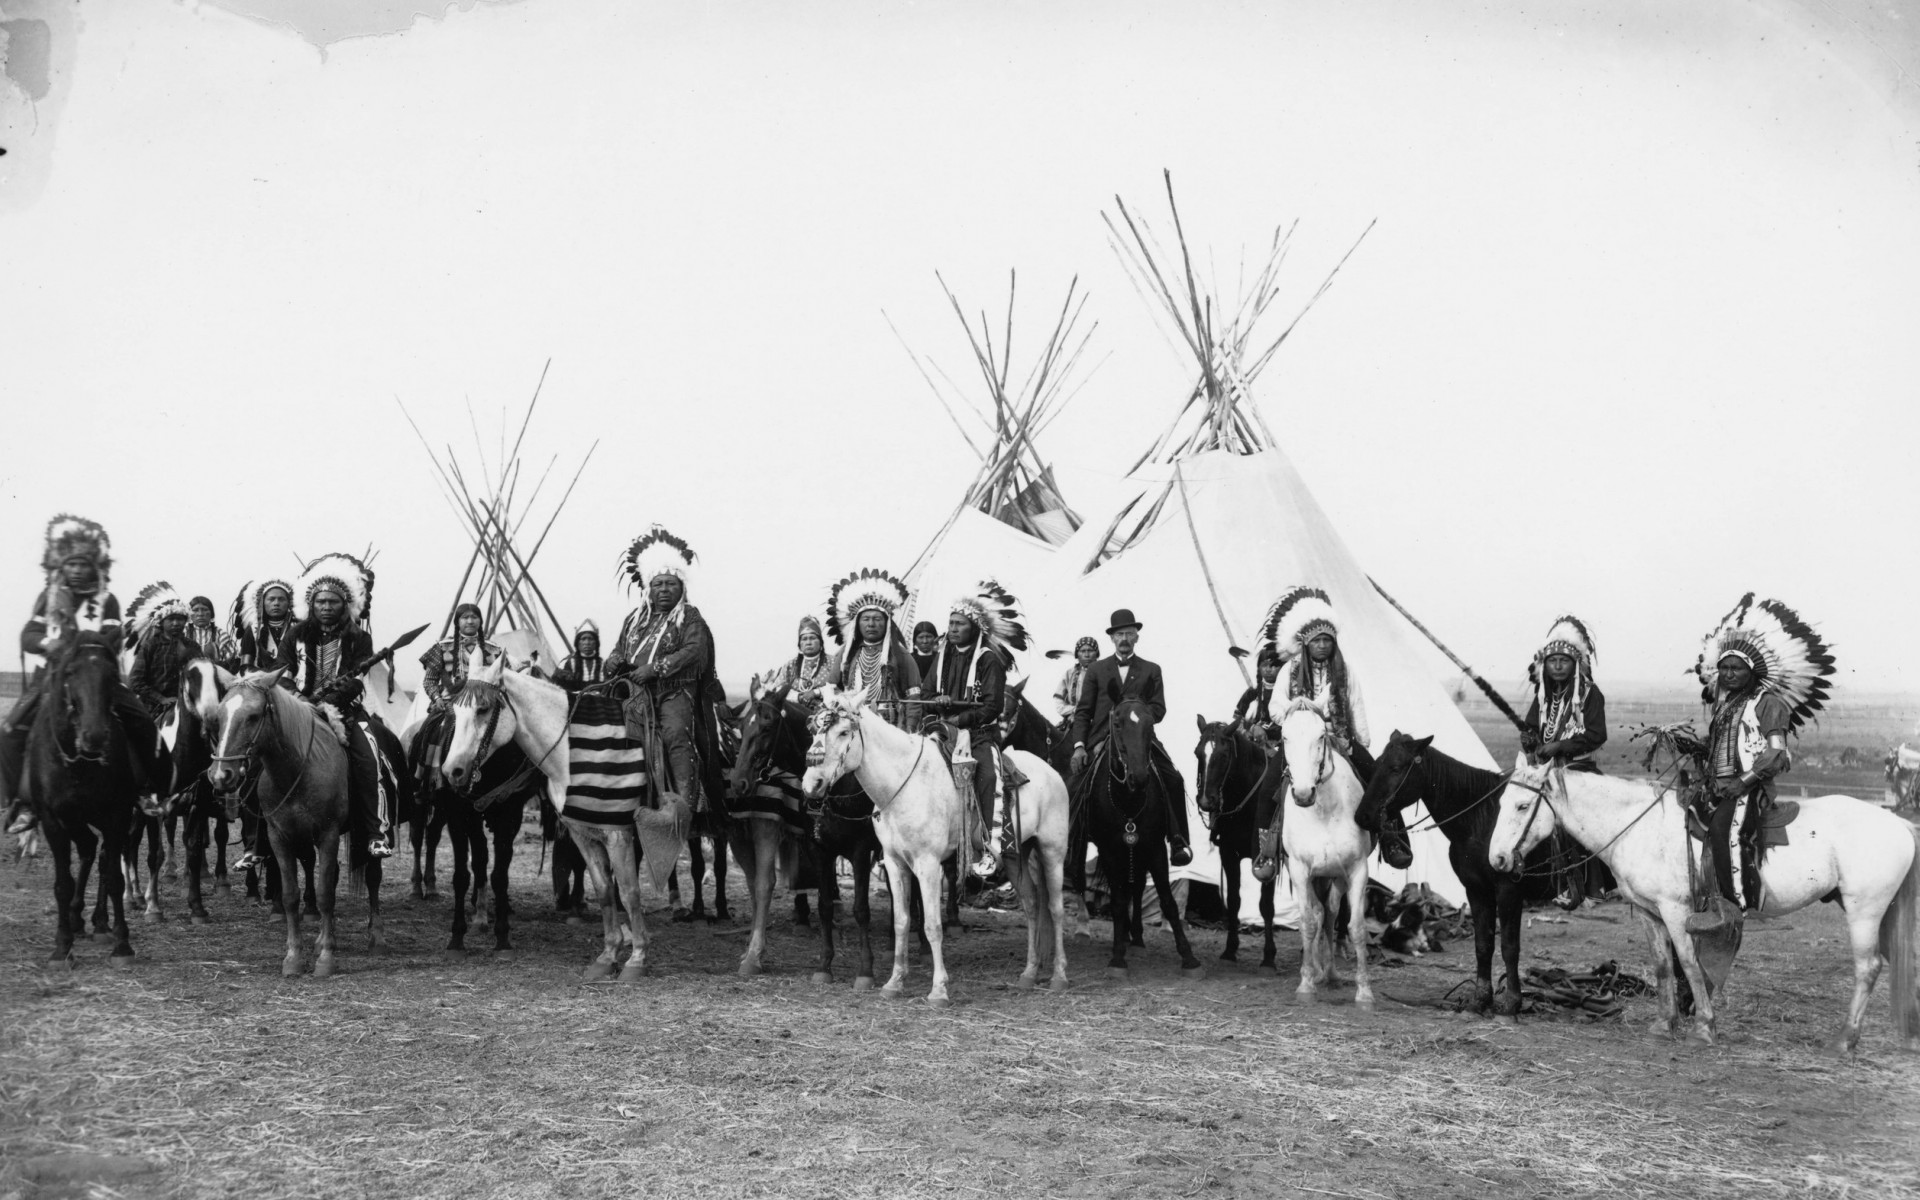 black white native american people crowd history wallpaper background 1920x1200